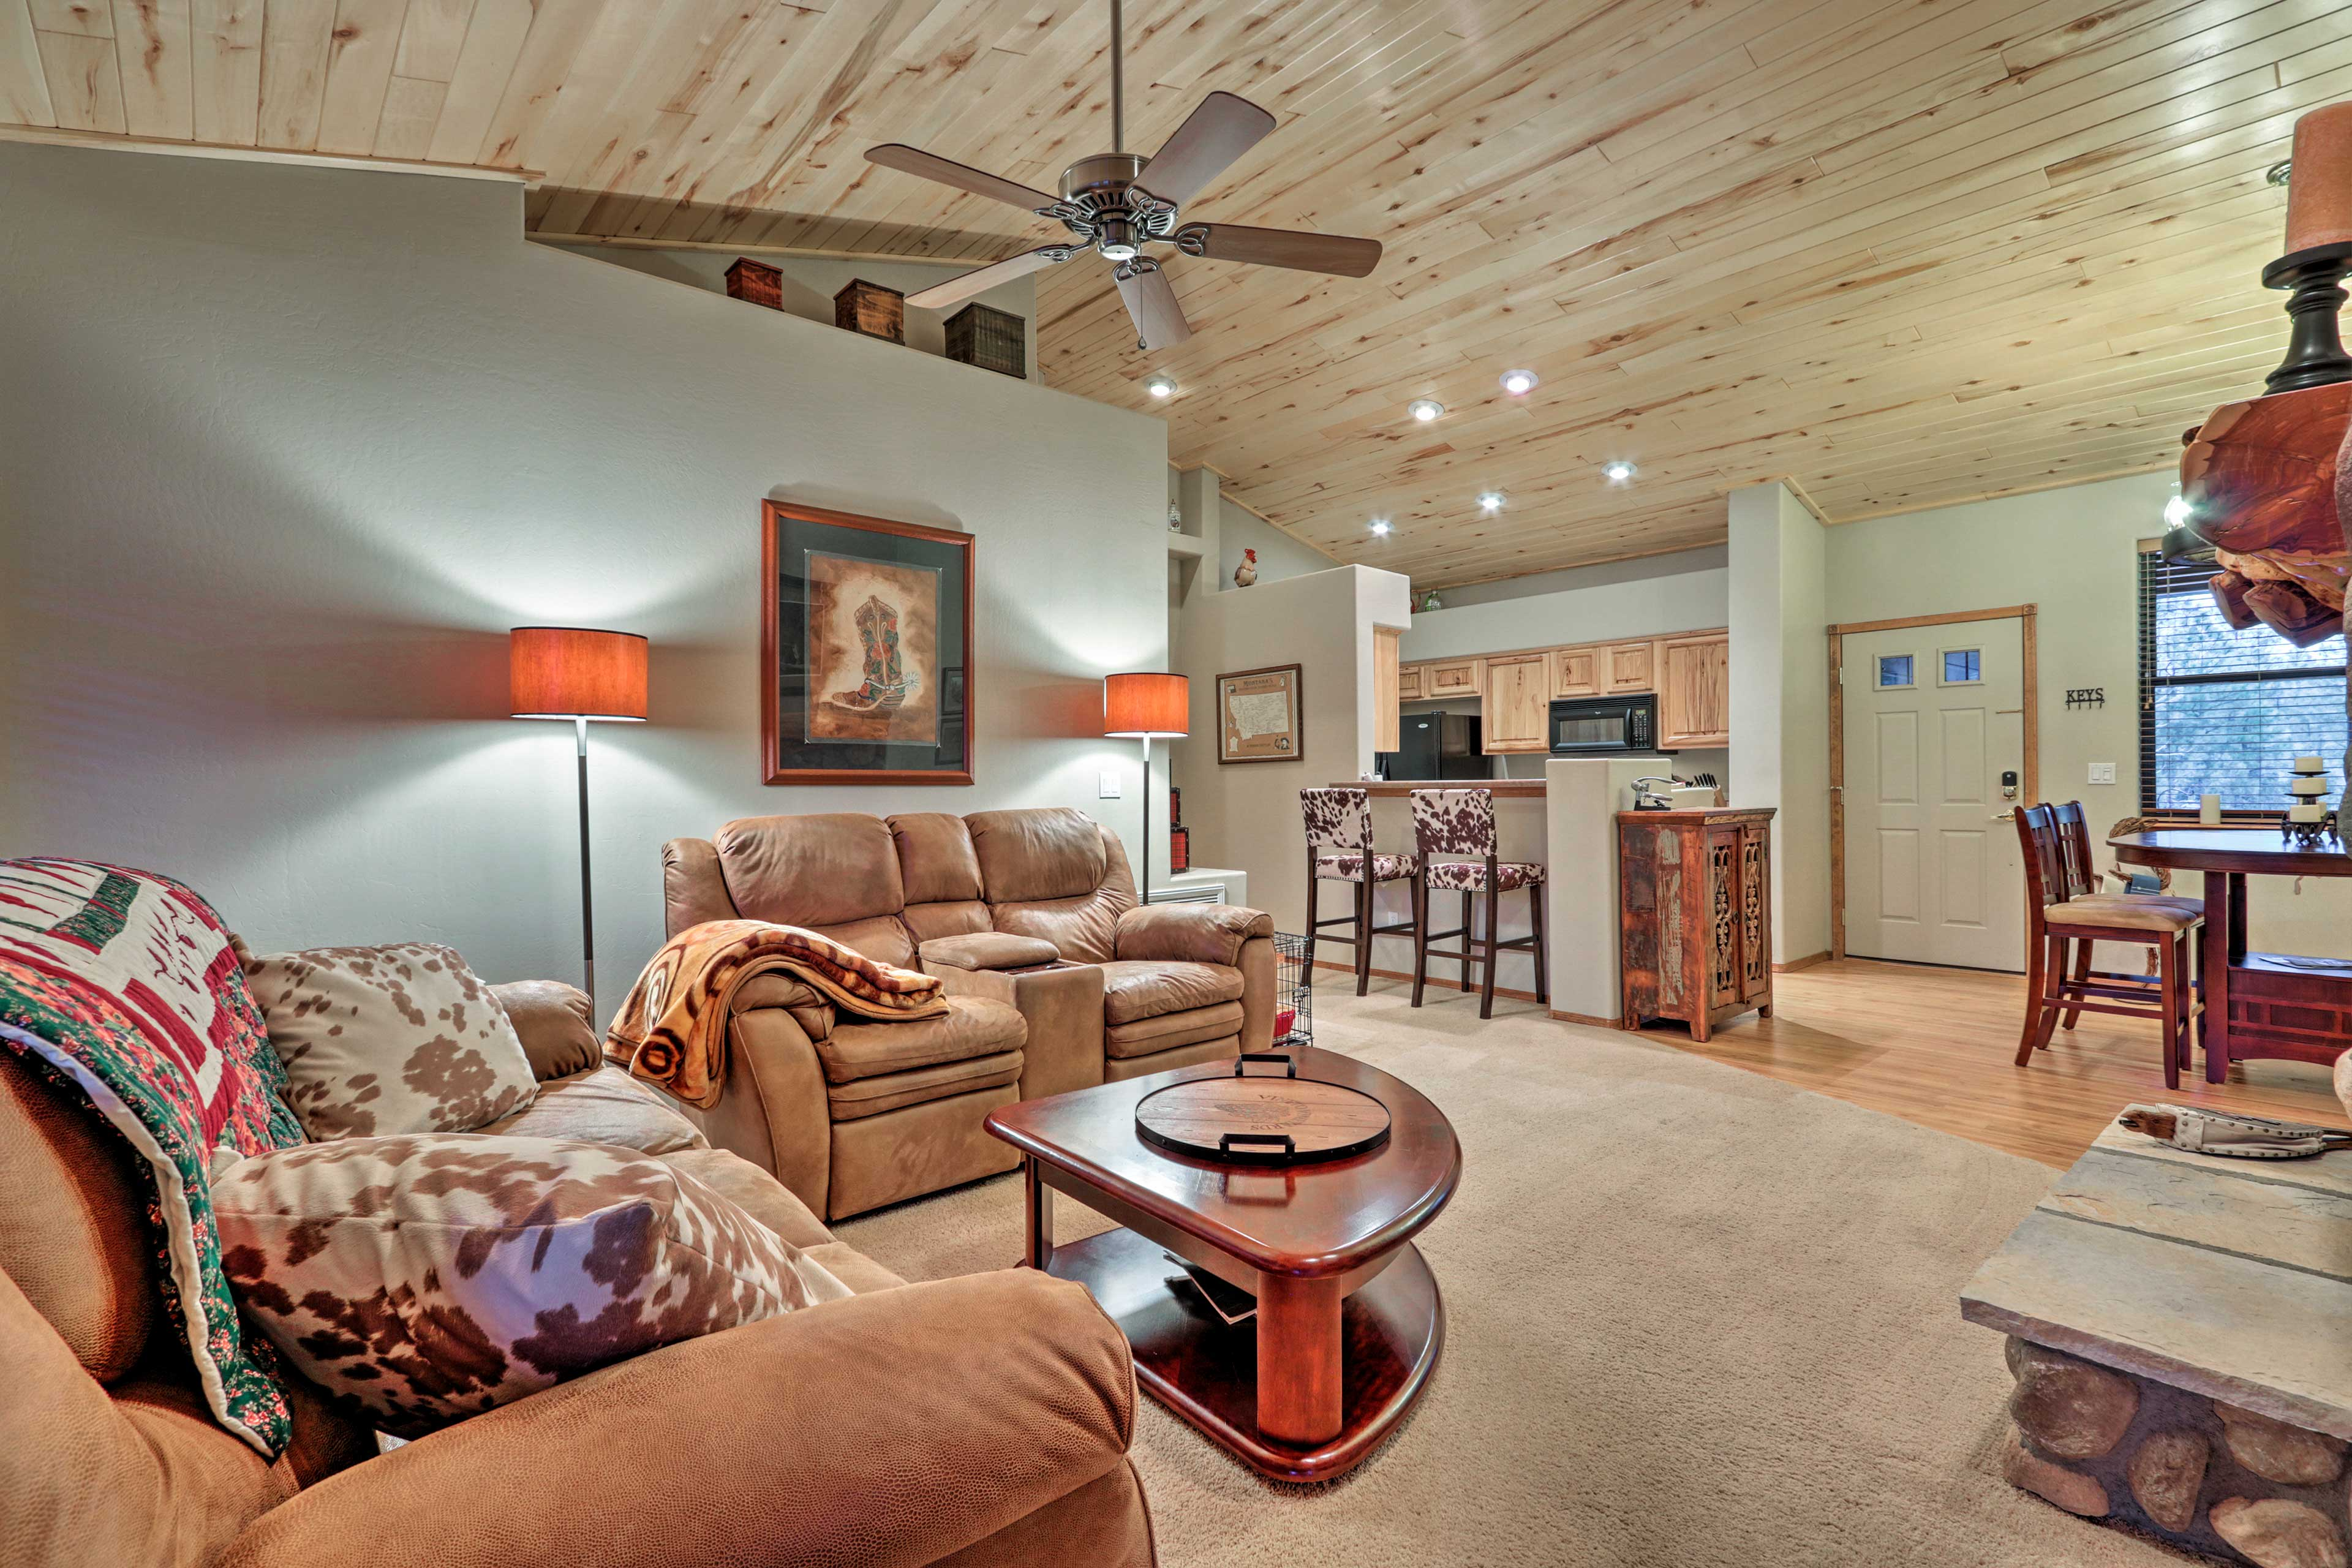 High ceilings and wood paneling accentuate the rustic appeal.